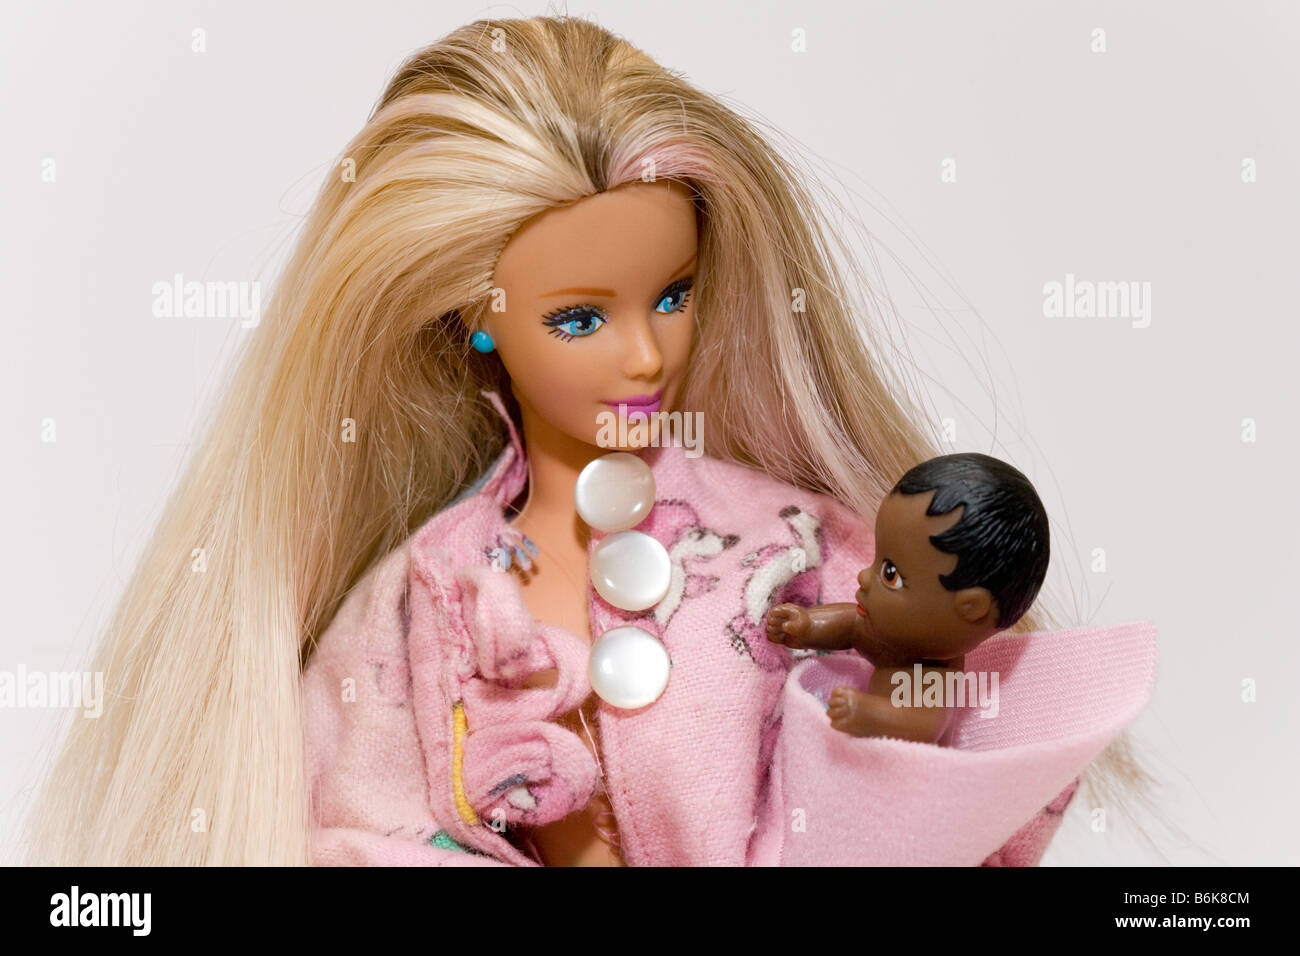 White mother with black child - concept of multicultural family, different ethnic backgrounds - Stock Image